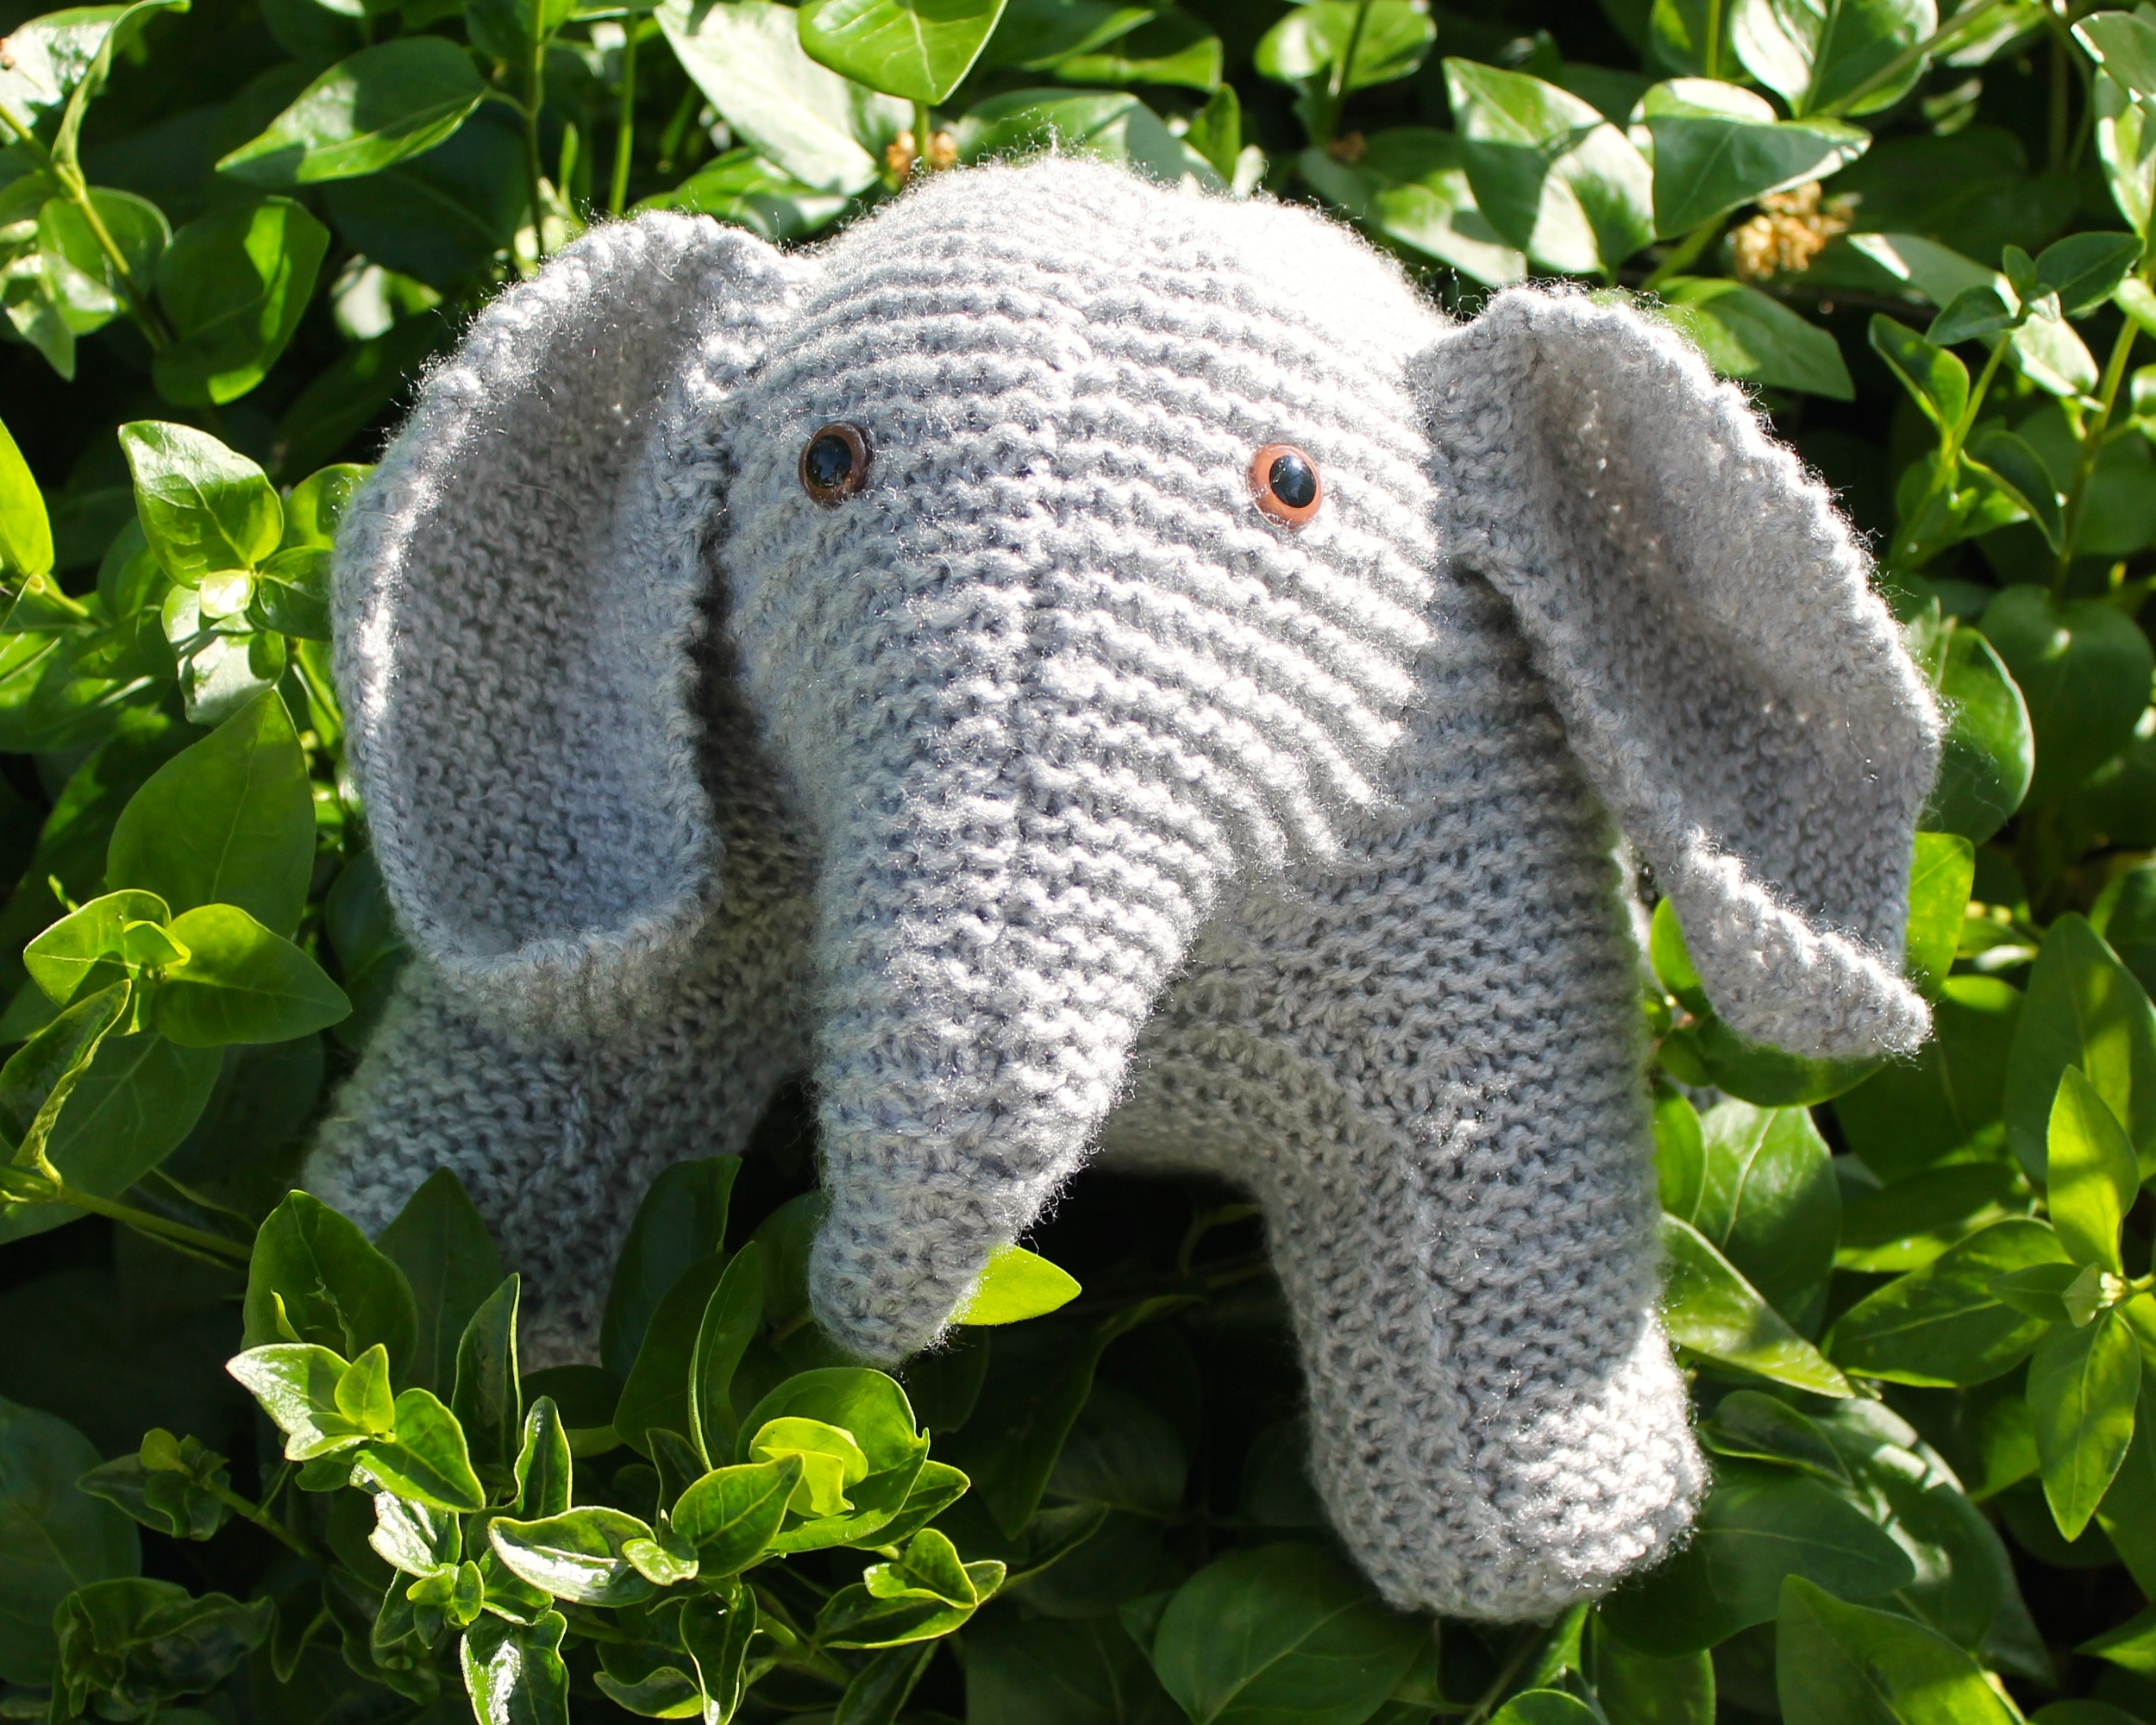 Gray knit stuffed elephant with brown glass eyes, sitting in a bush